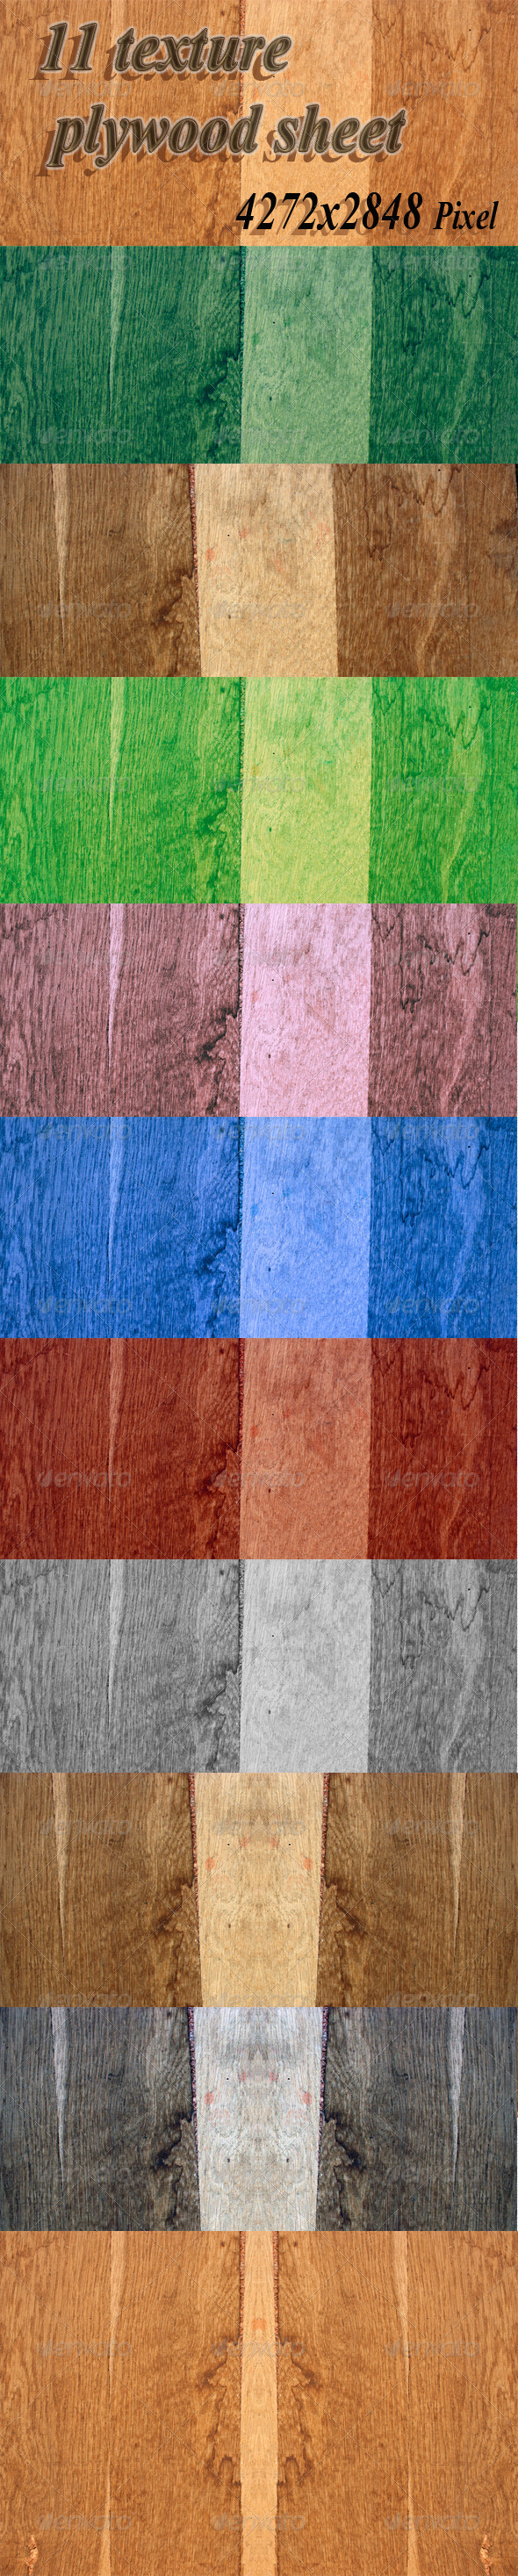 Texture of the Sheet of Plywood - Wood Textures